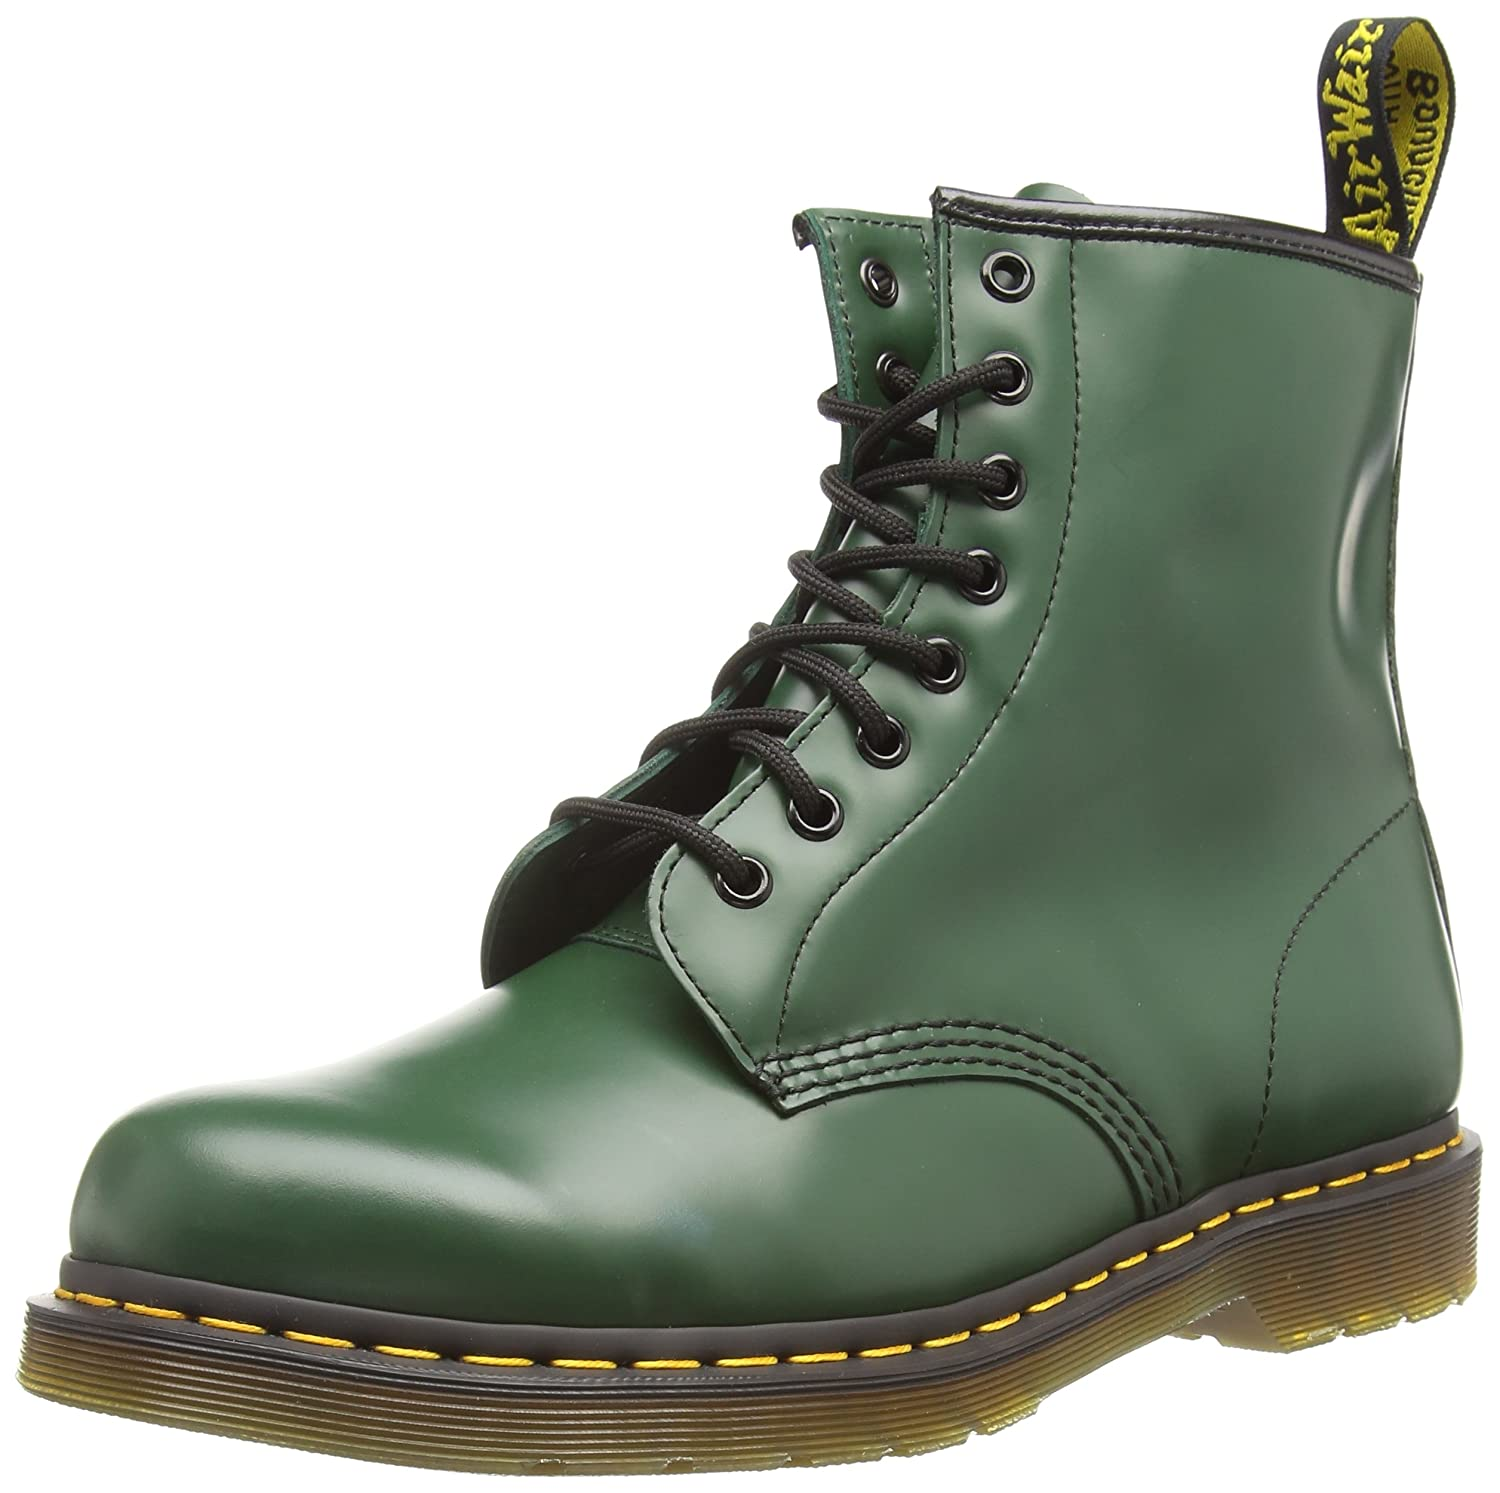 Dr. Martens Men's 1460 Classic Boot B00131Y9CA 7UK / 8 US Mens / 9 US Womens, 41 EU|Green Smooth Leather